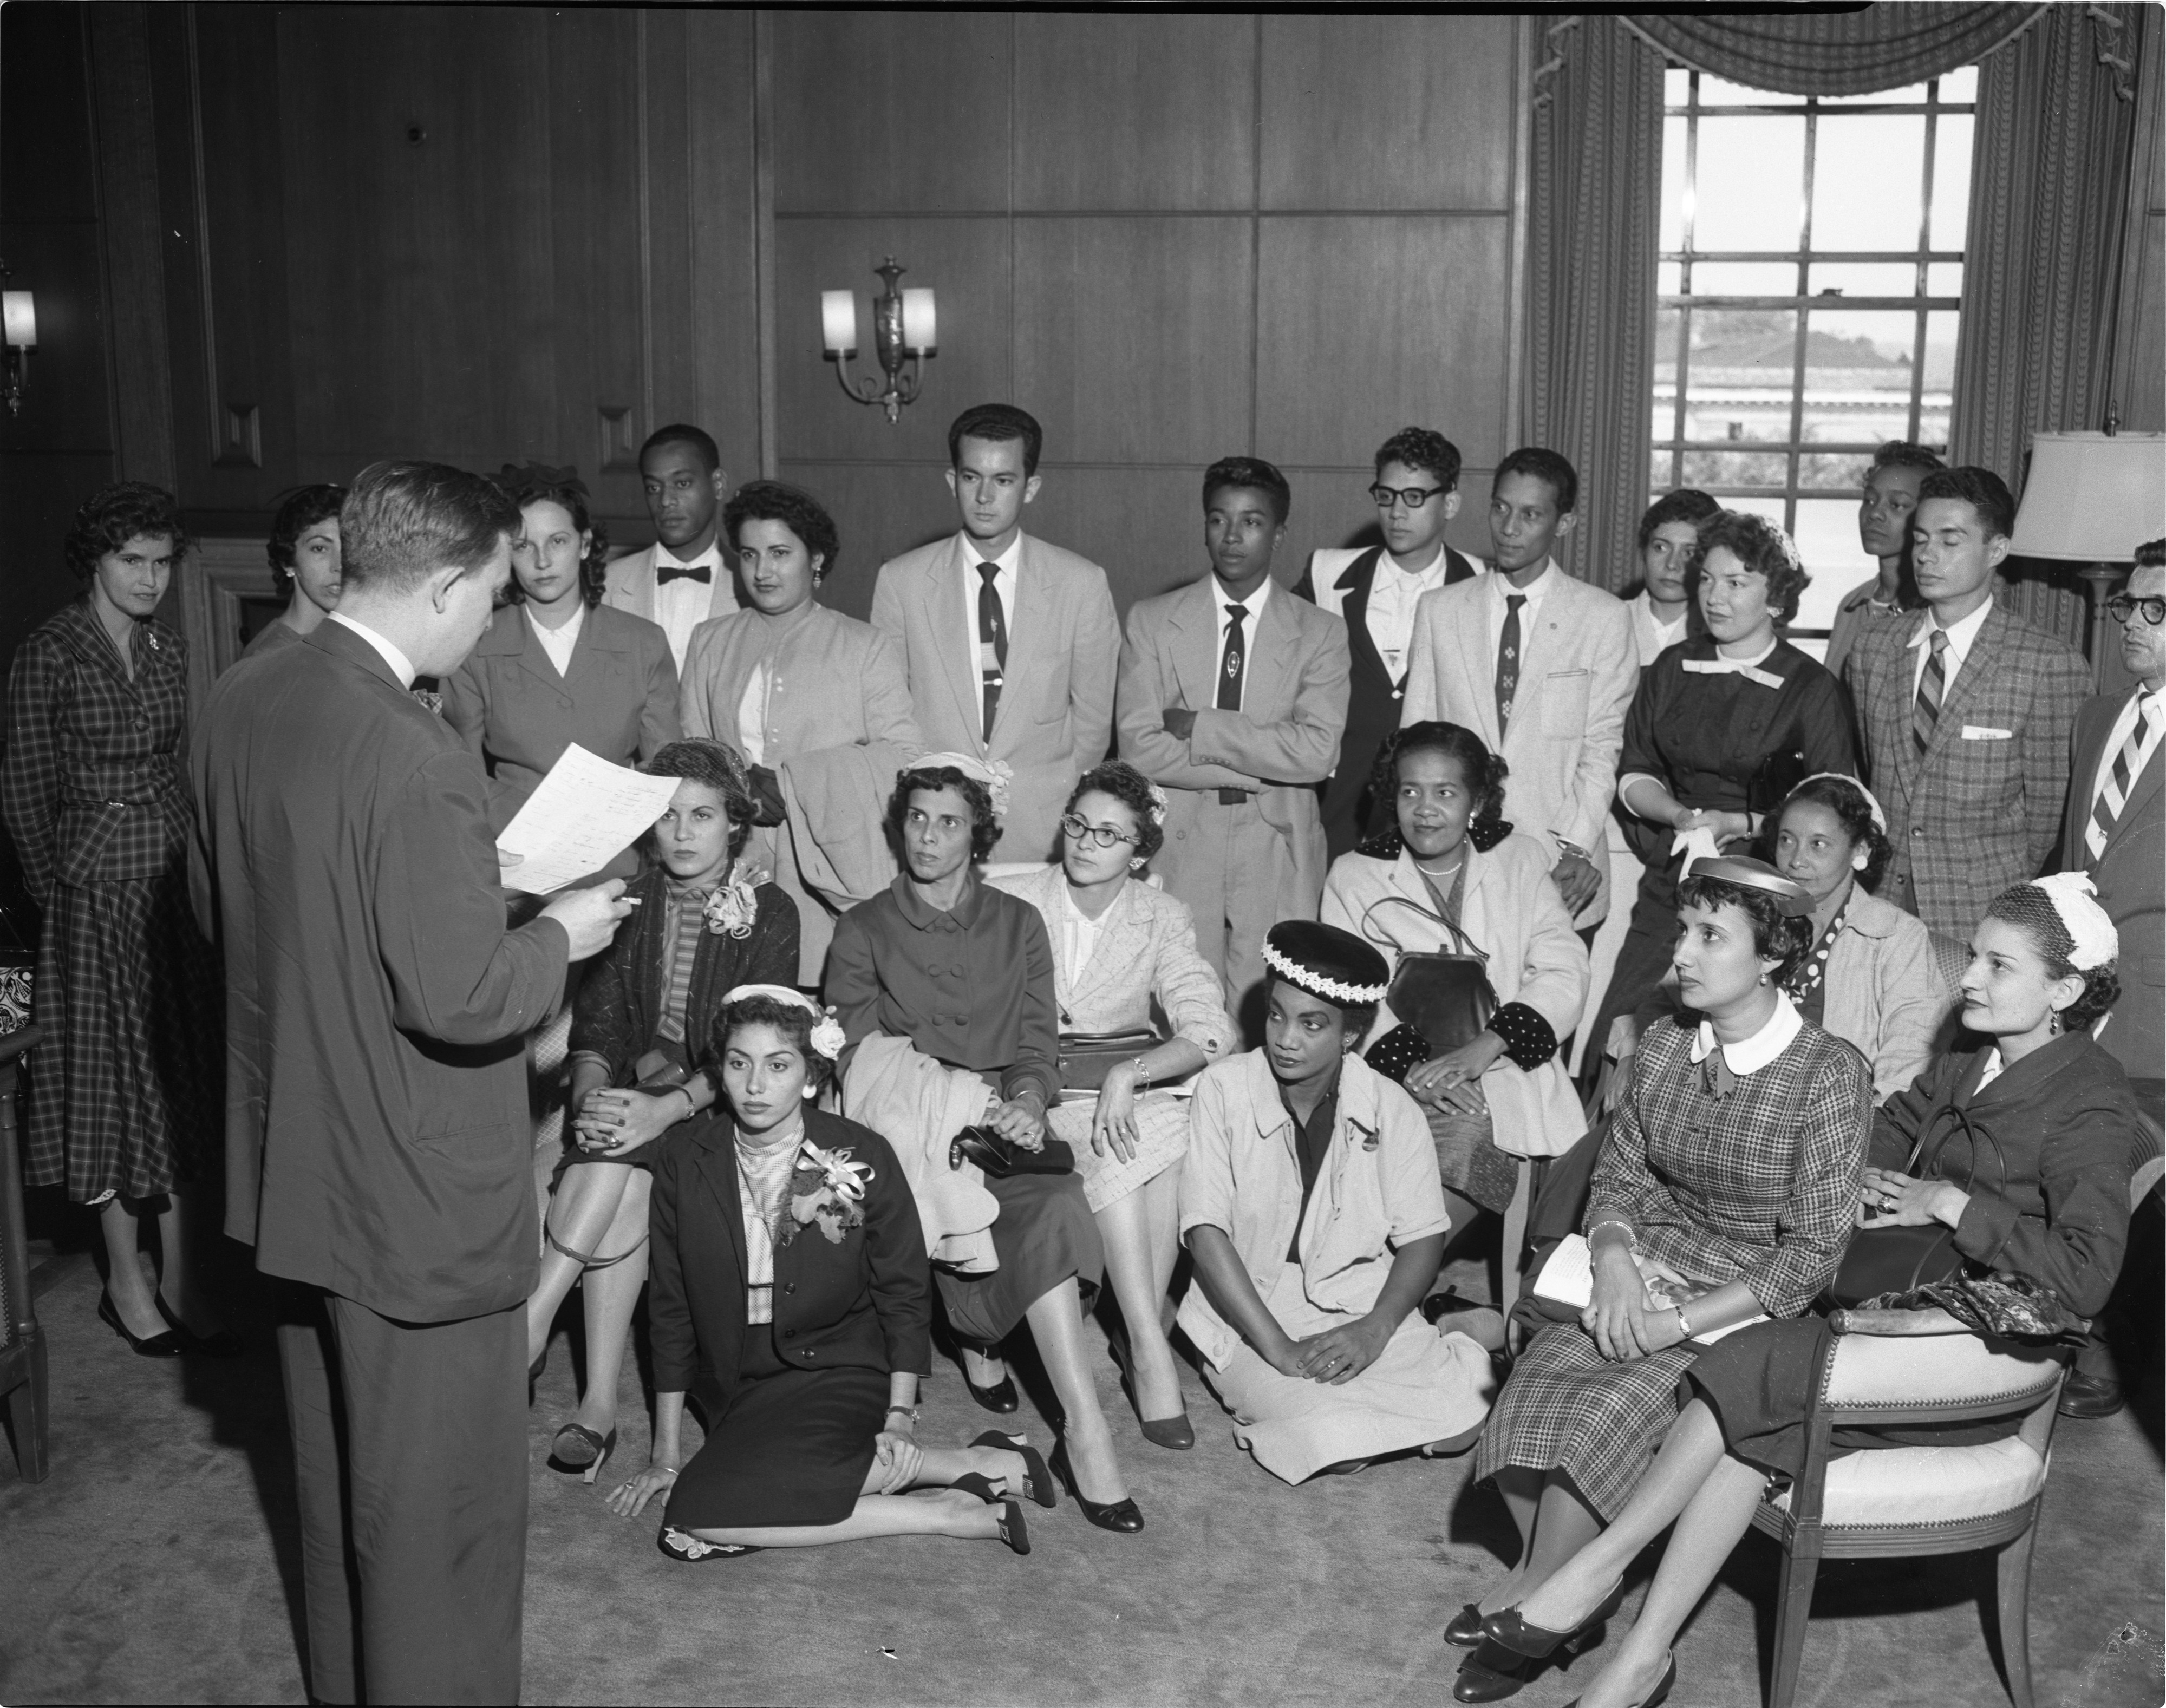 Teachers From Puerto Rico Studying English At UM Meet At Rackham, September 12, 1956 image